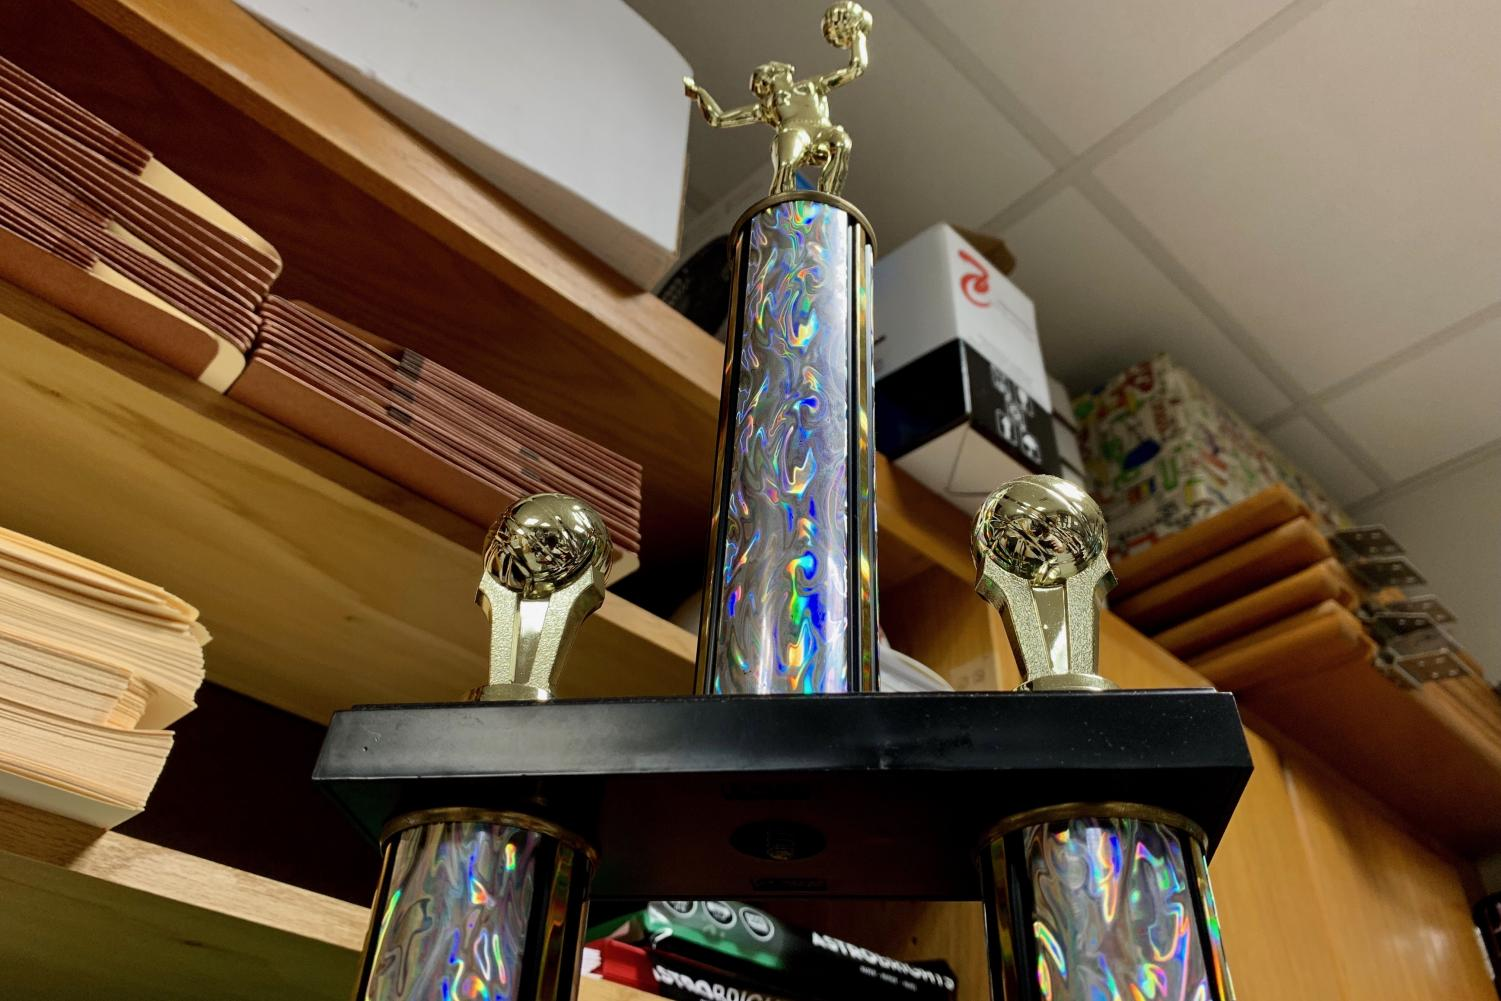 Featured above is the homeroom volleyball trophy that Bulin's homeroom earned during the 2018 tournament.